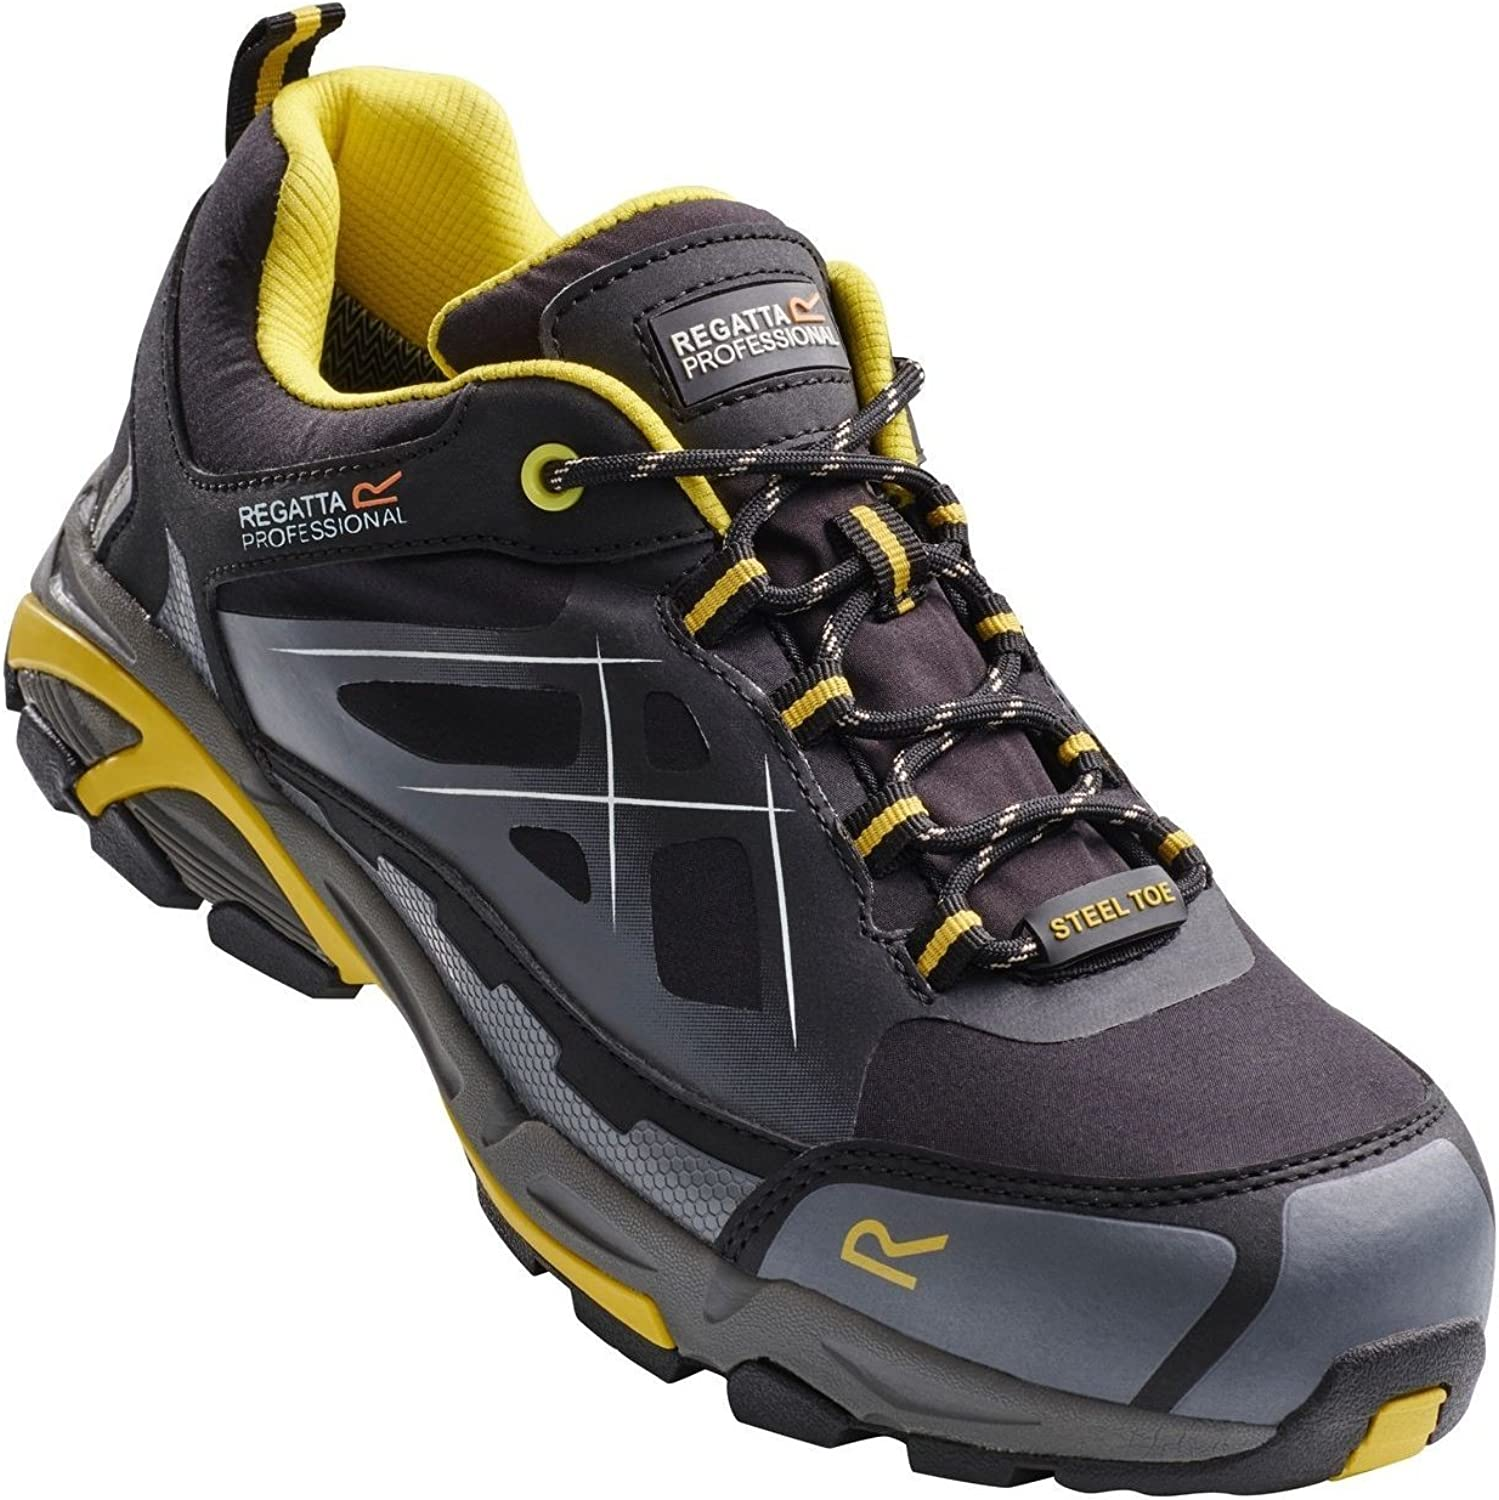 Regatta Professional Mens Prime Softshell S3 Wide Fitting Safety Trainers Black Yellow 41